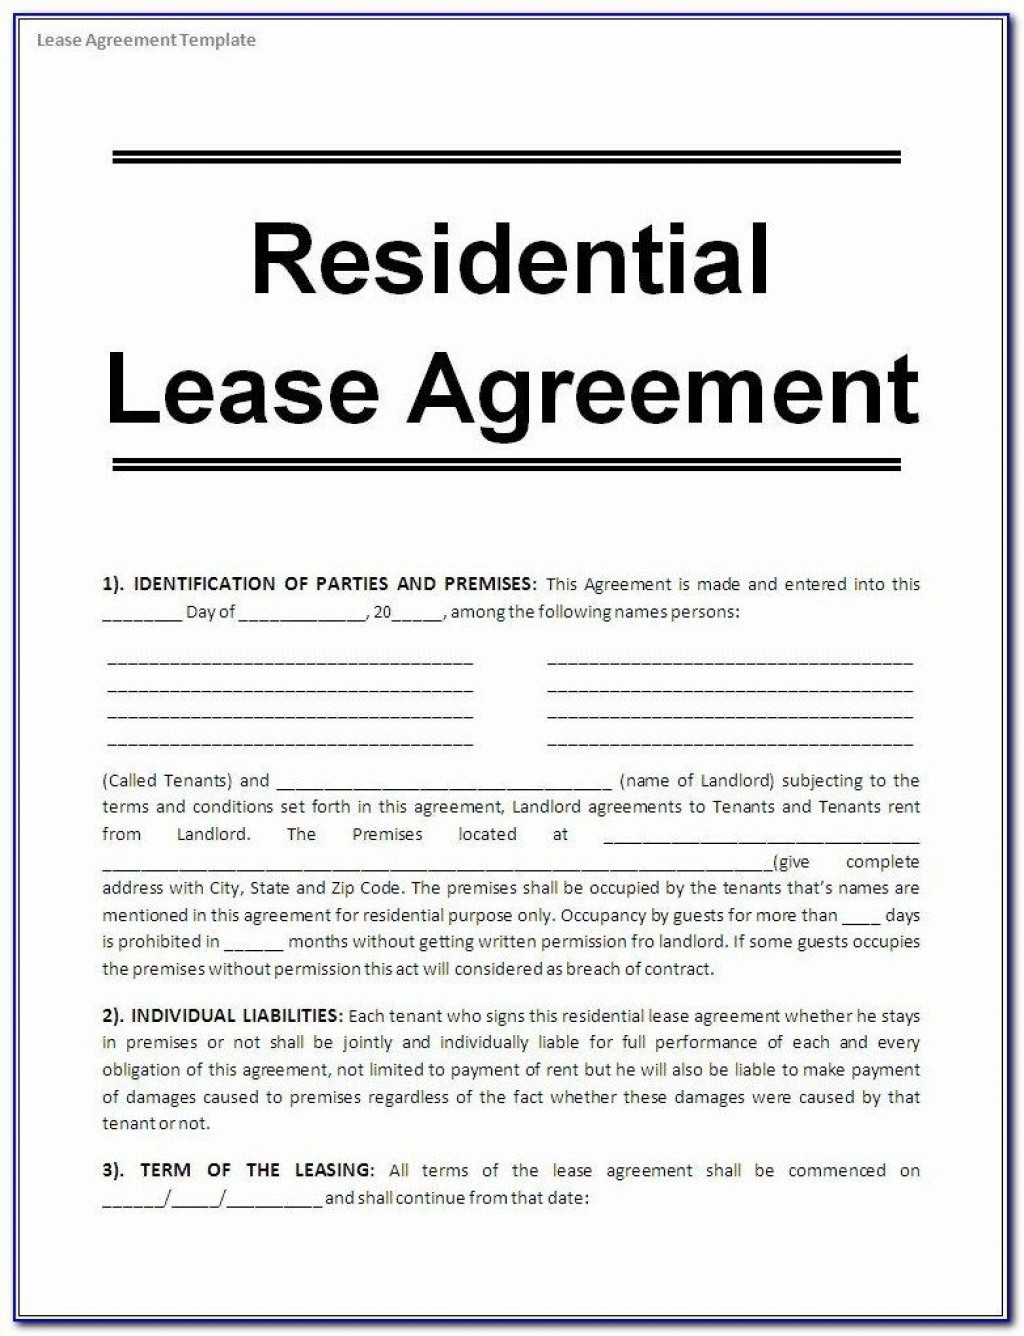 006 Rare Rental Agreement Template Word South Africa Inspiration  Room Doc Application FormLarge